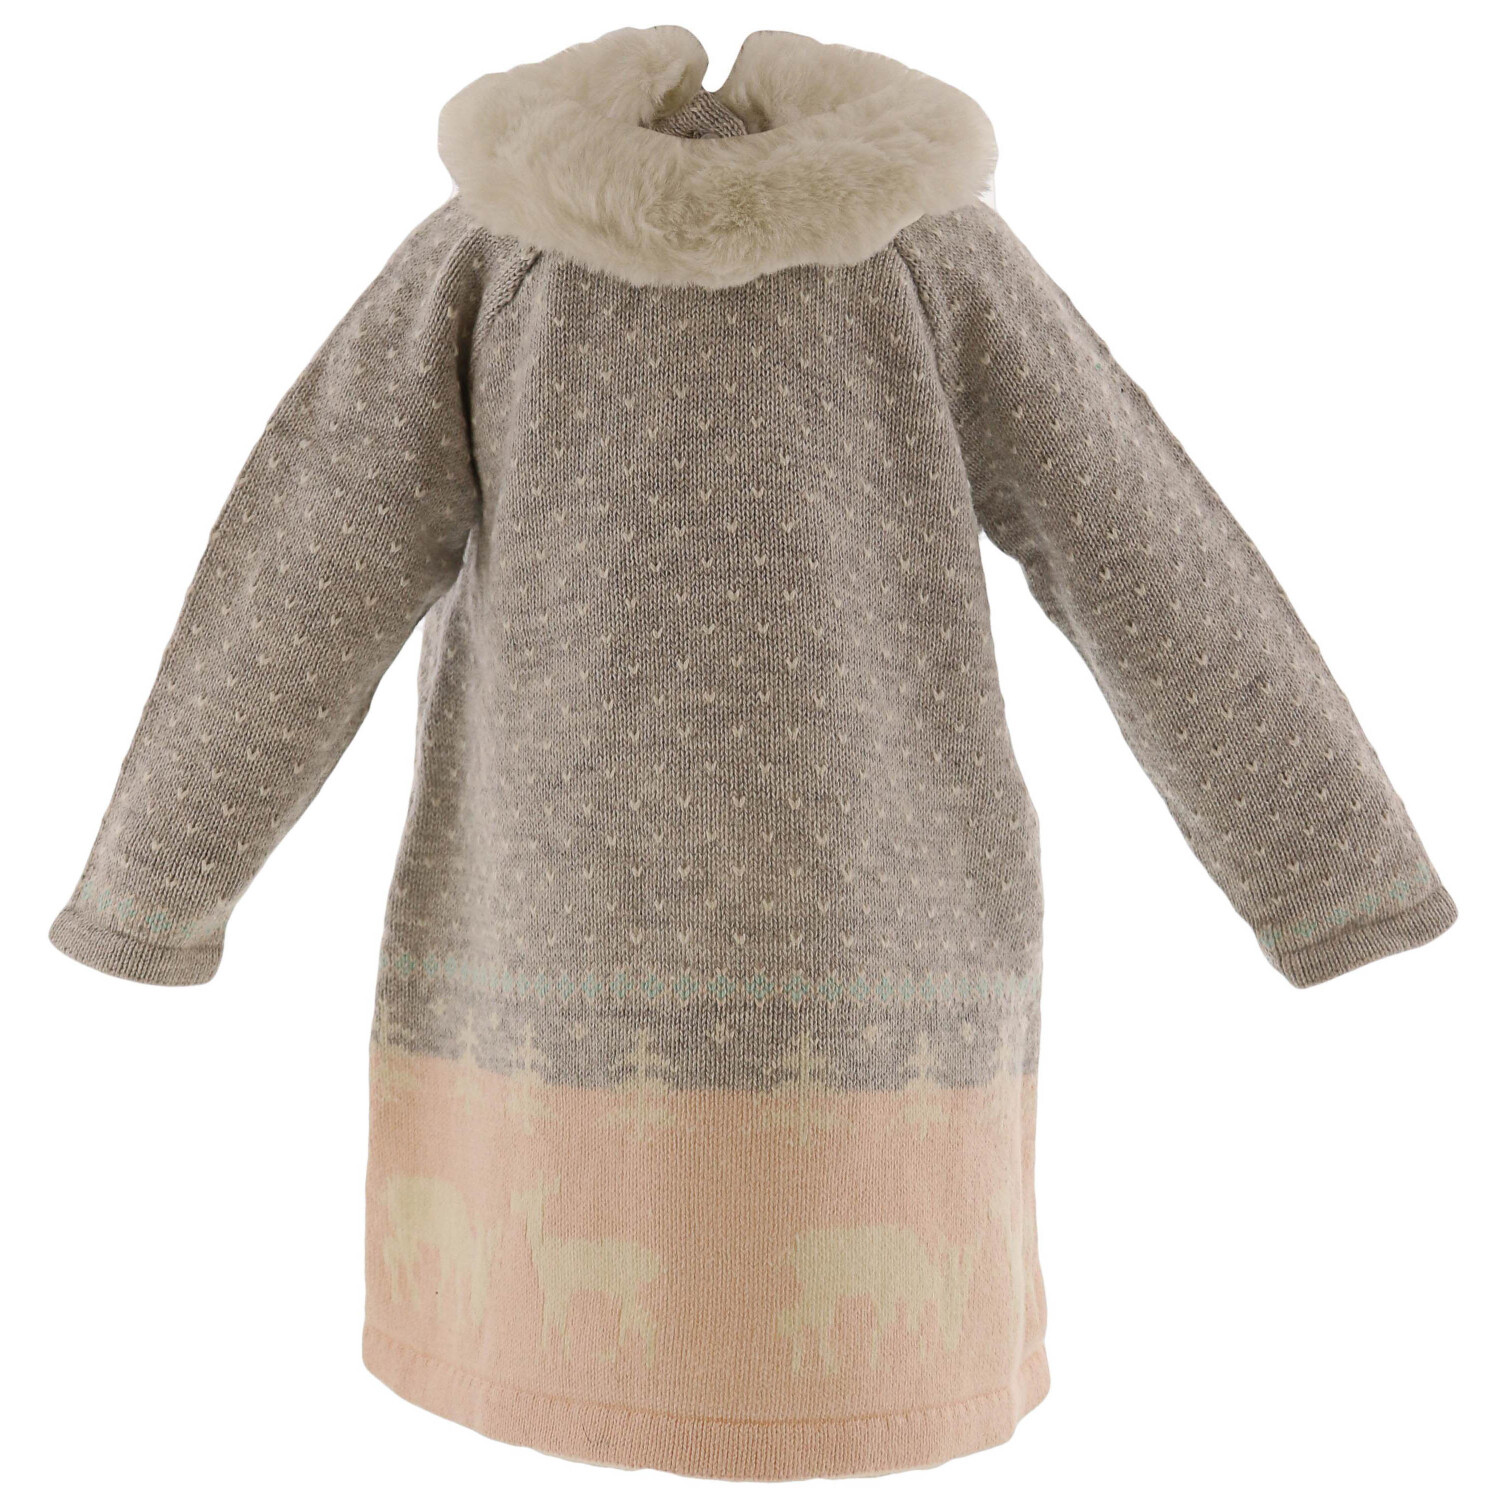 Janie And Jack Girl's Grey Deer Sweater Dress - 3-6 Months